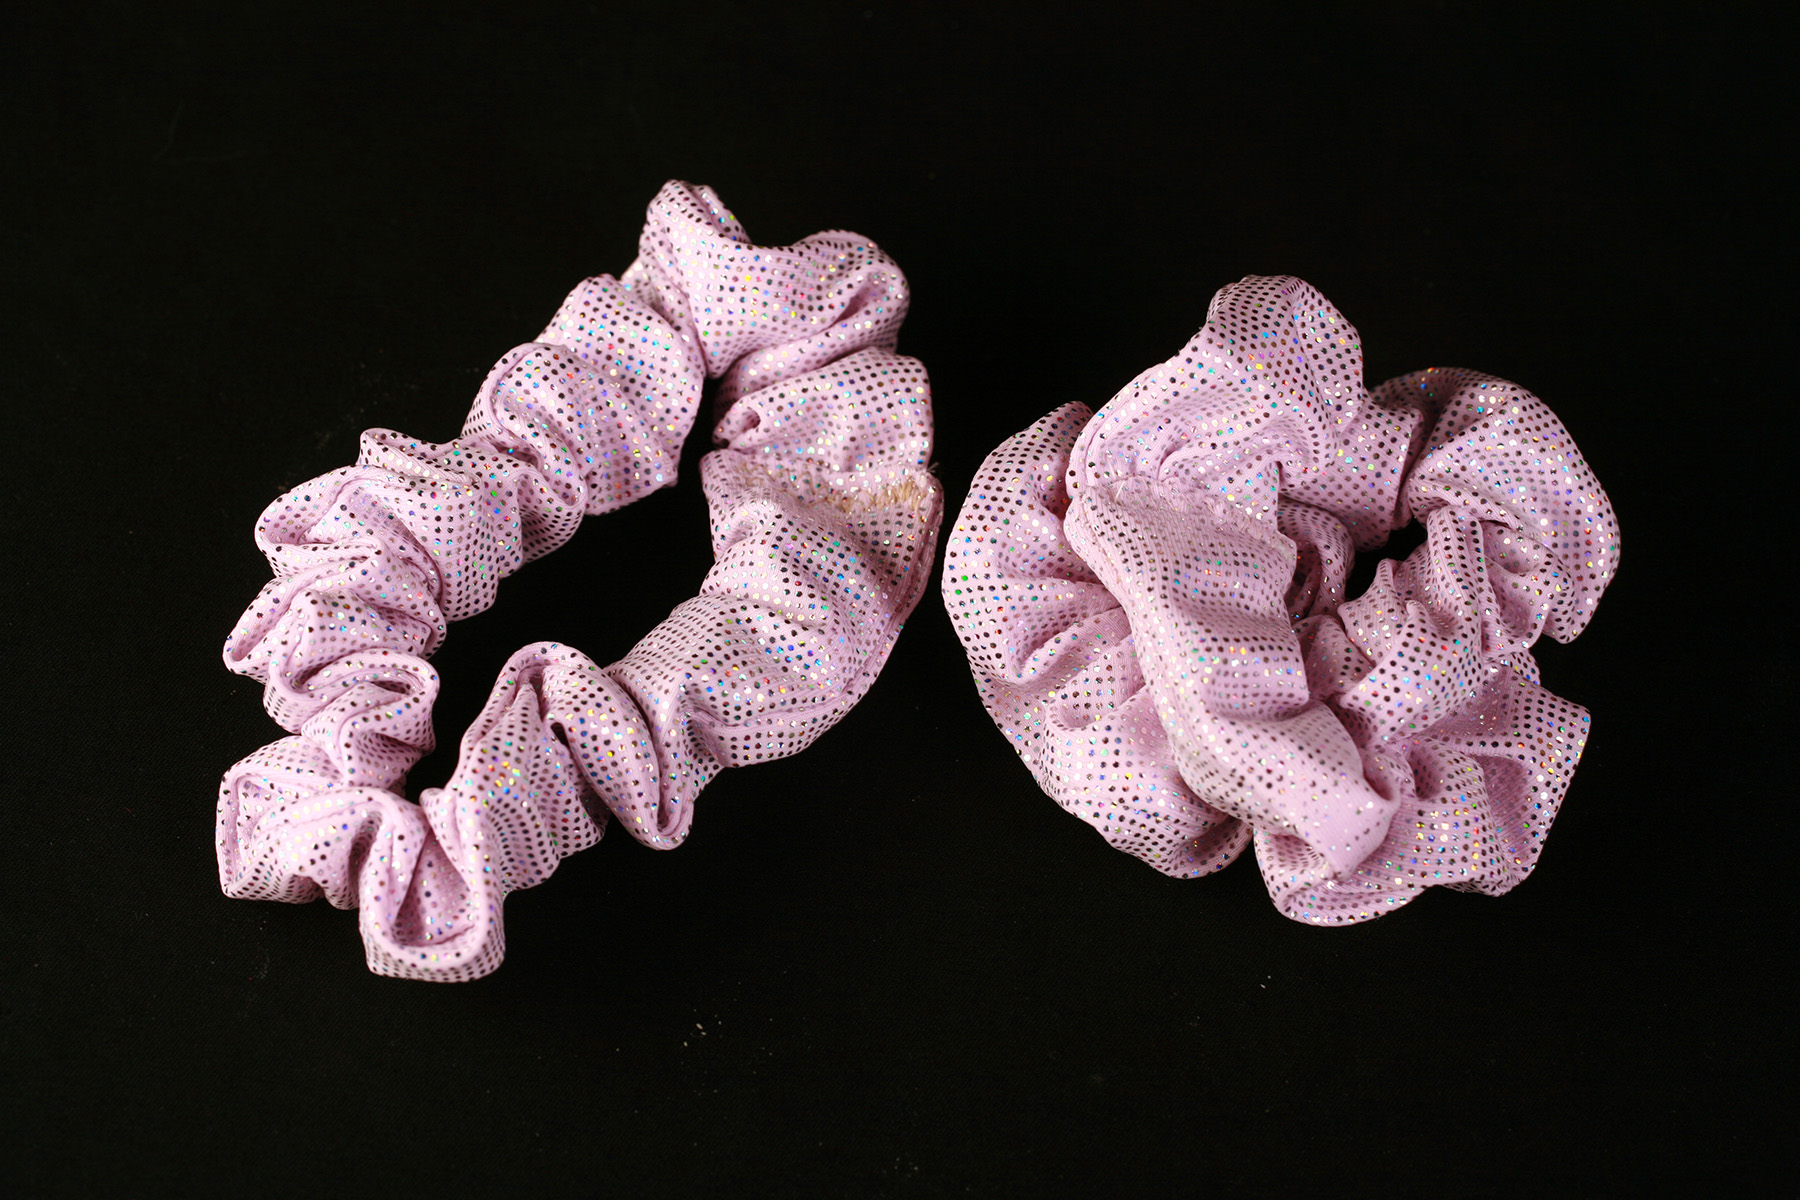 Two sparkling light pink scrunchies are shown against a black background.